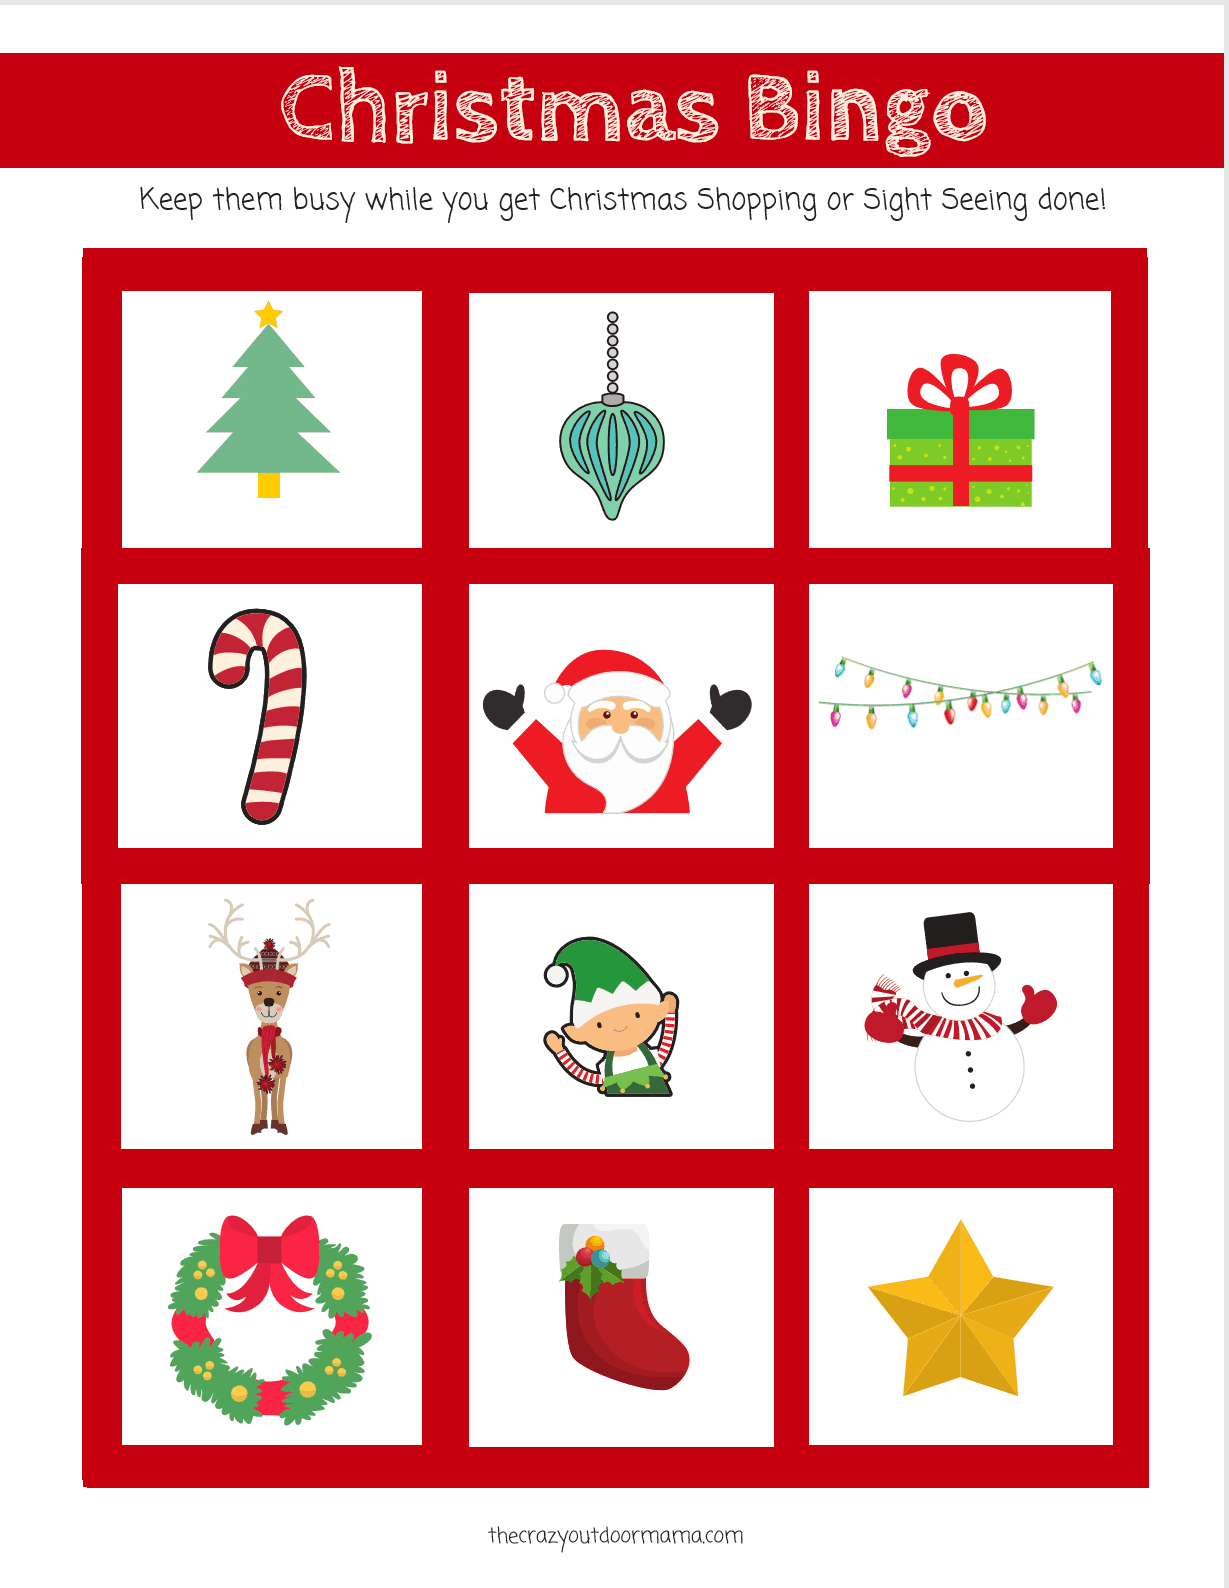 Cute And Fun Christmas Bingo Scavenger Hunt Game For Kids